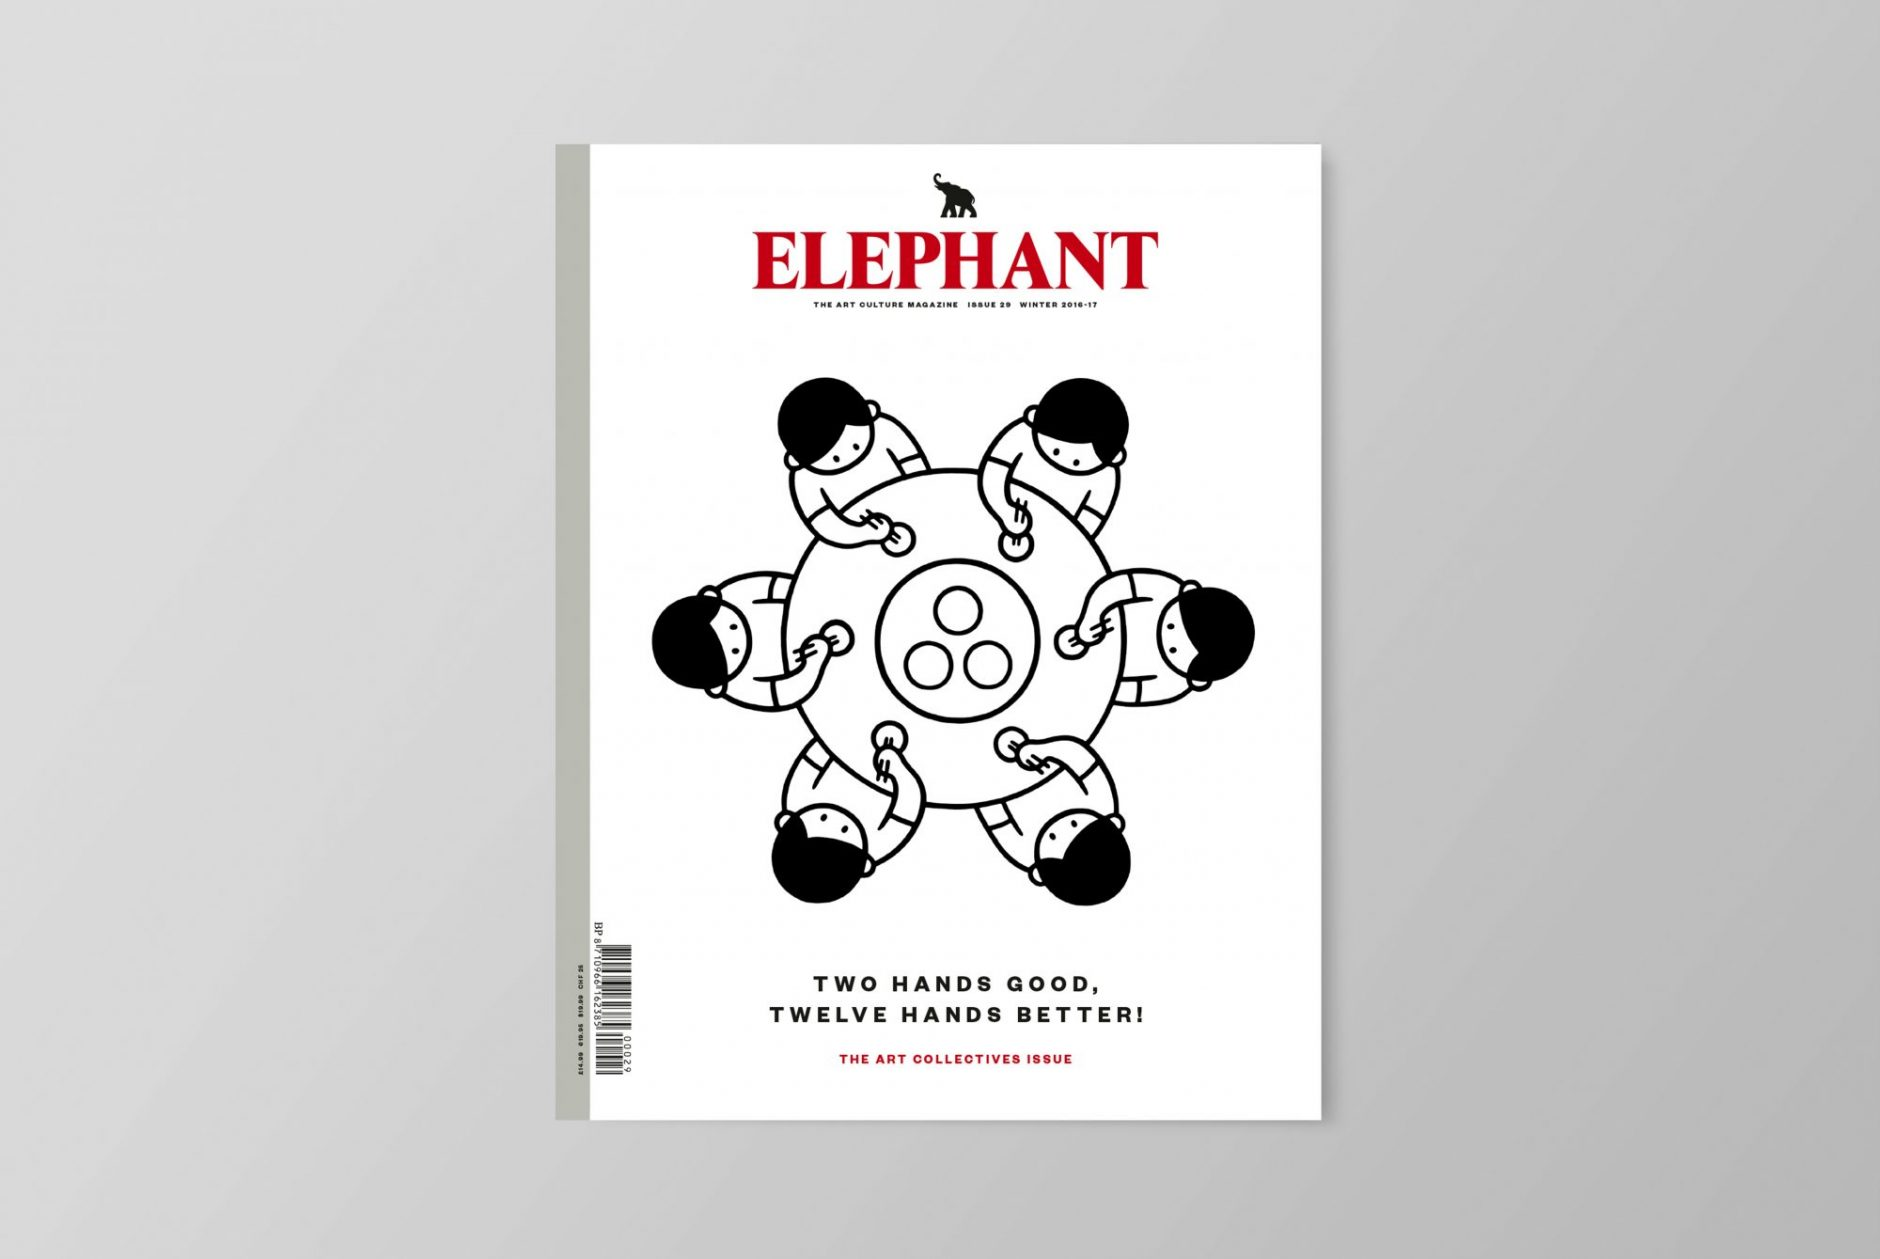 Art Director of the Year: Elephant, Amsterdam (lobende Erwähnung)